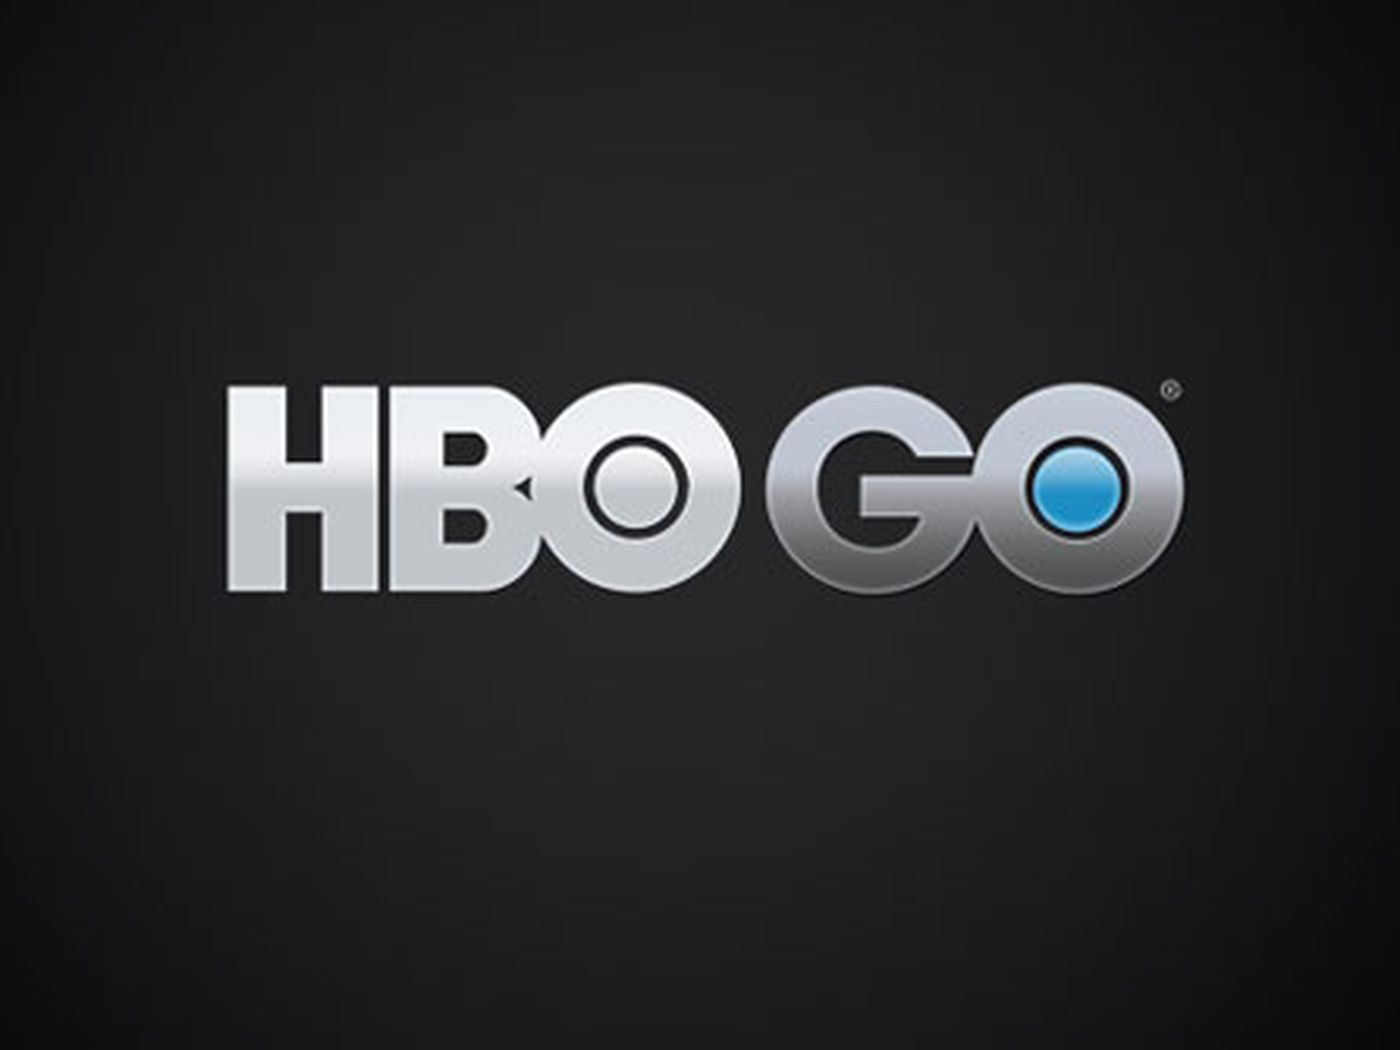 HBO Go for Android updated with Jelly Bean support - The Verge